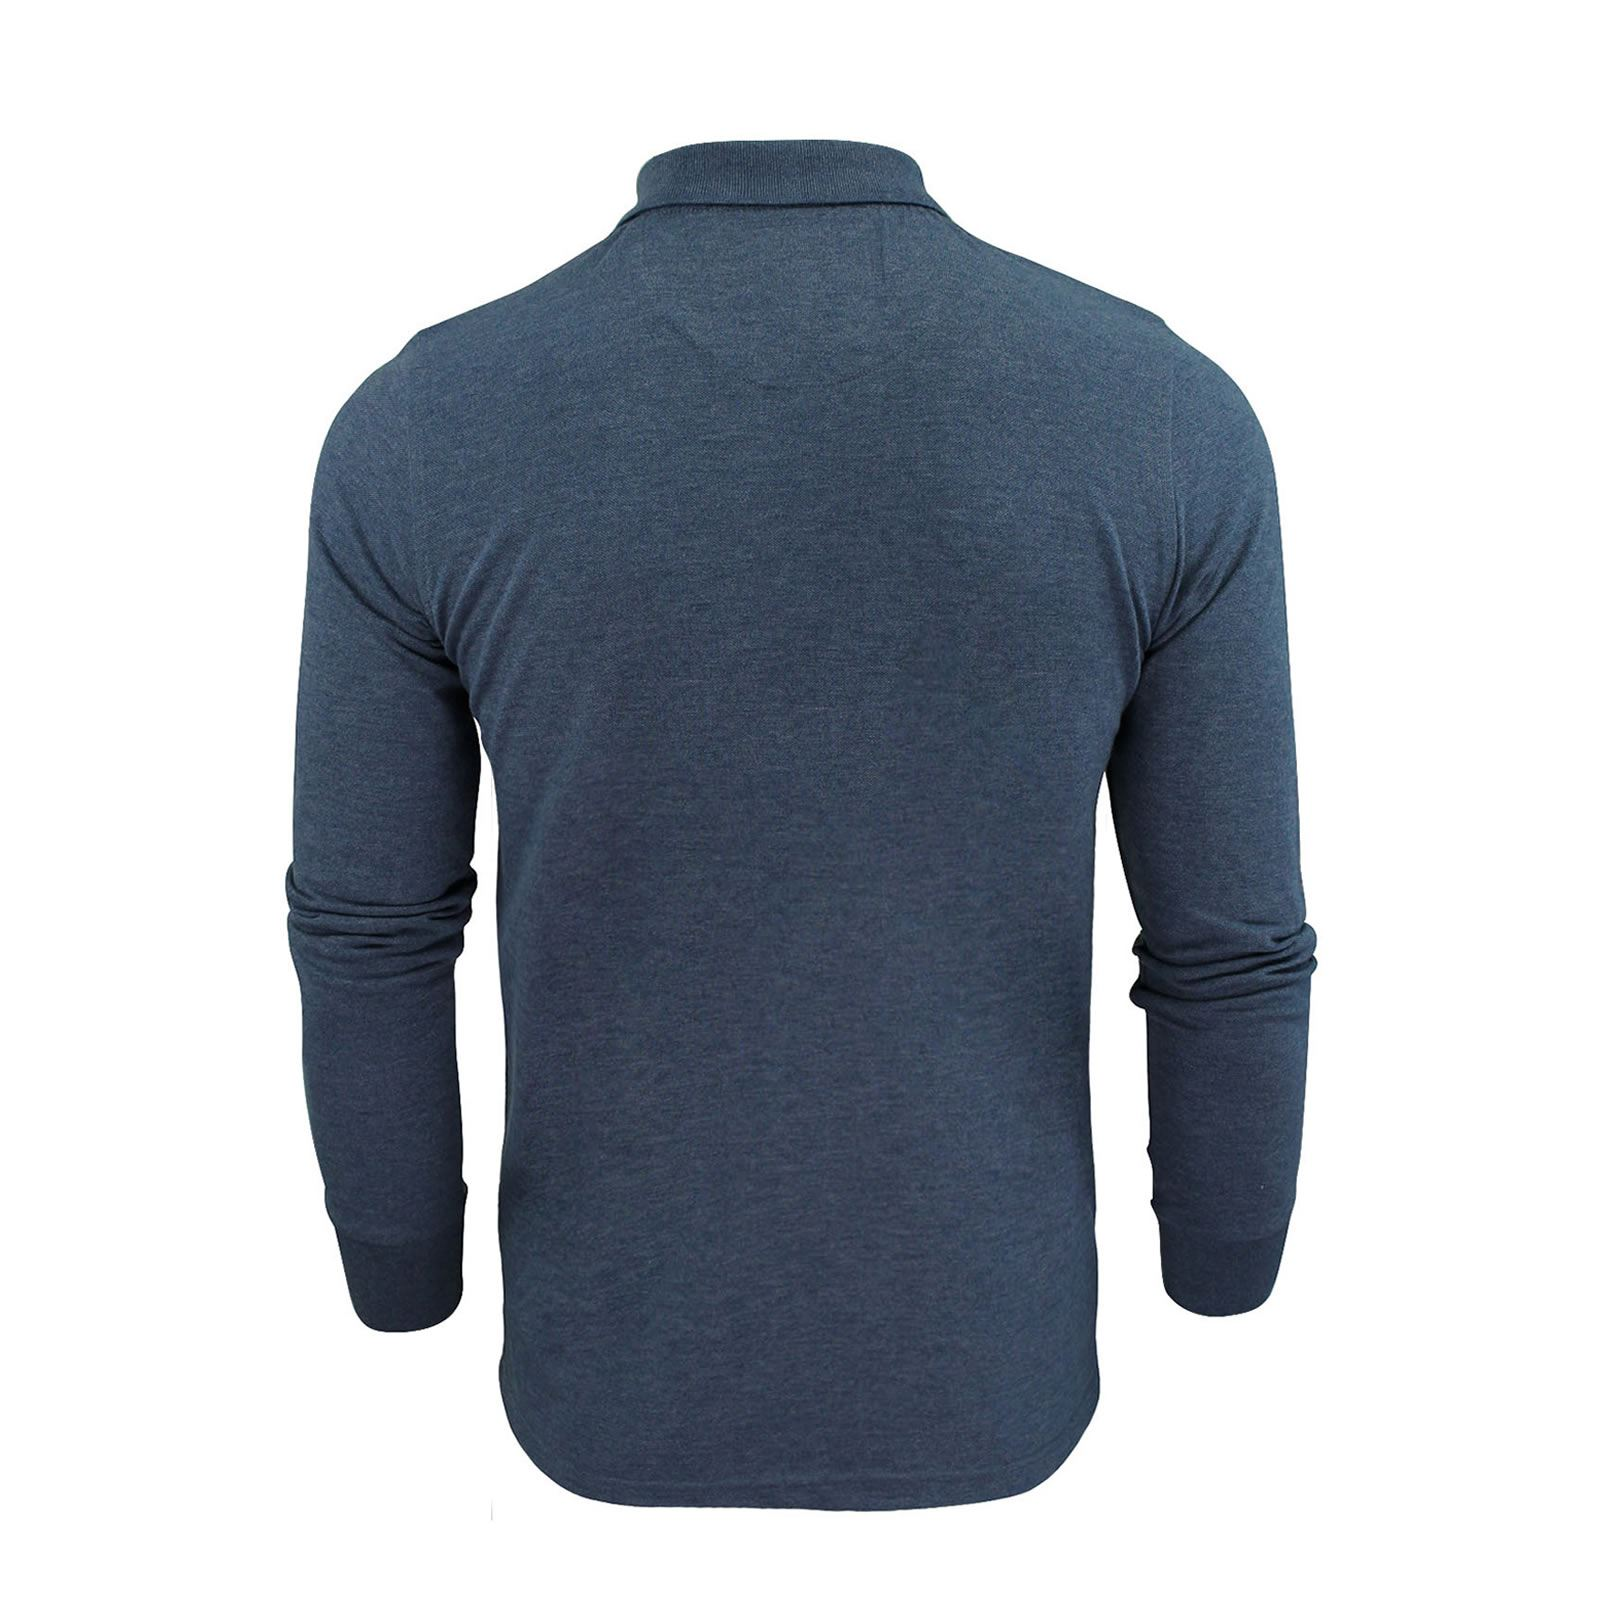 Mens-Polo-T-Shirt-Brave-Soul-Lincoln-Long-Sleeve-Cotton-Pique-Casual-Top thumbnail 15